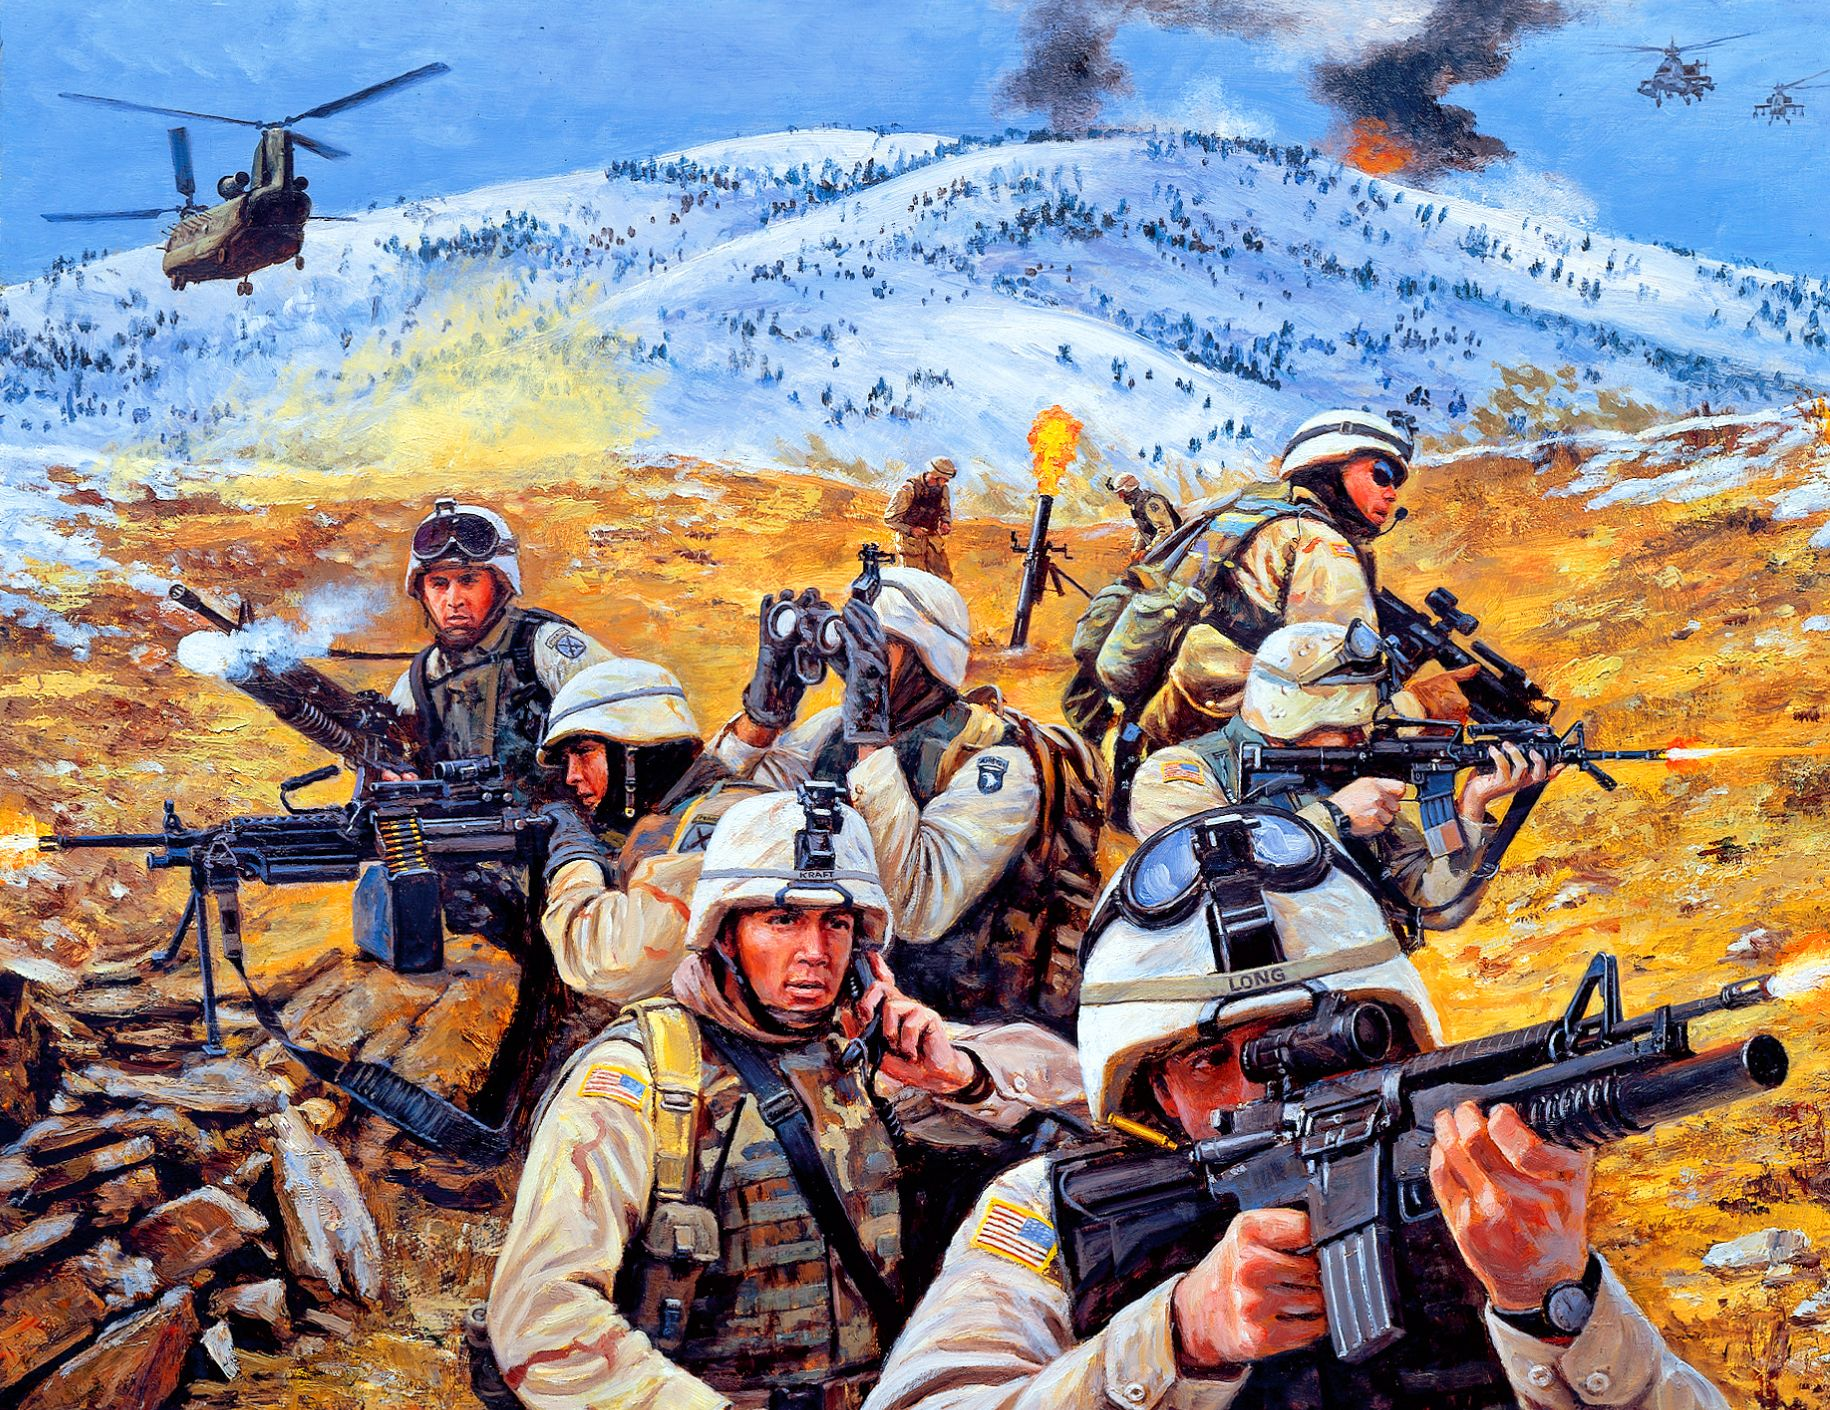 modern war in afghanistan The role of religion in modern middle east conflicts  let's learn more about the war in afghanistan, the longest war in the history of the united states  the war in afghanistan: causes.